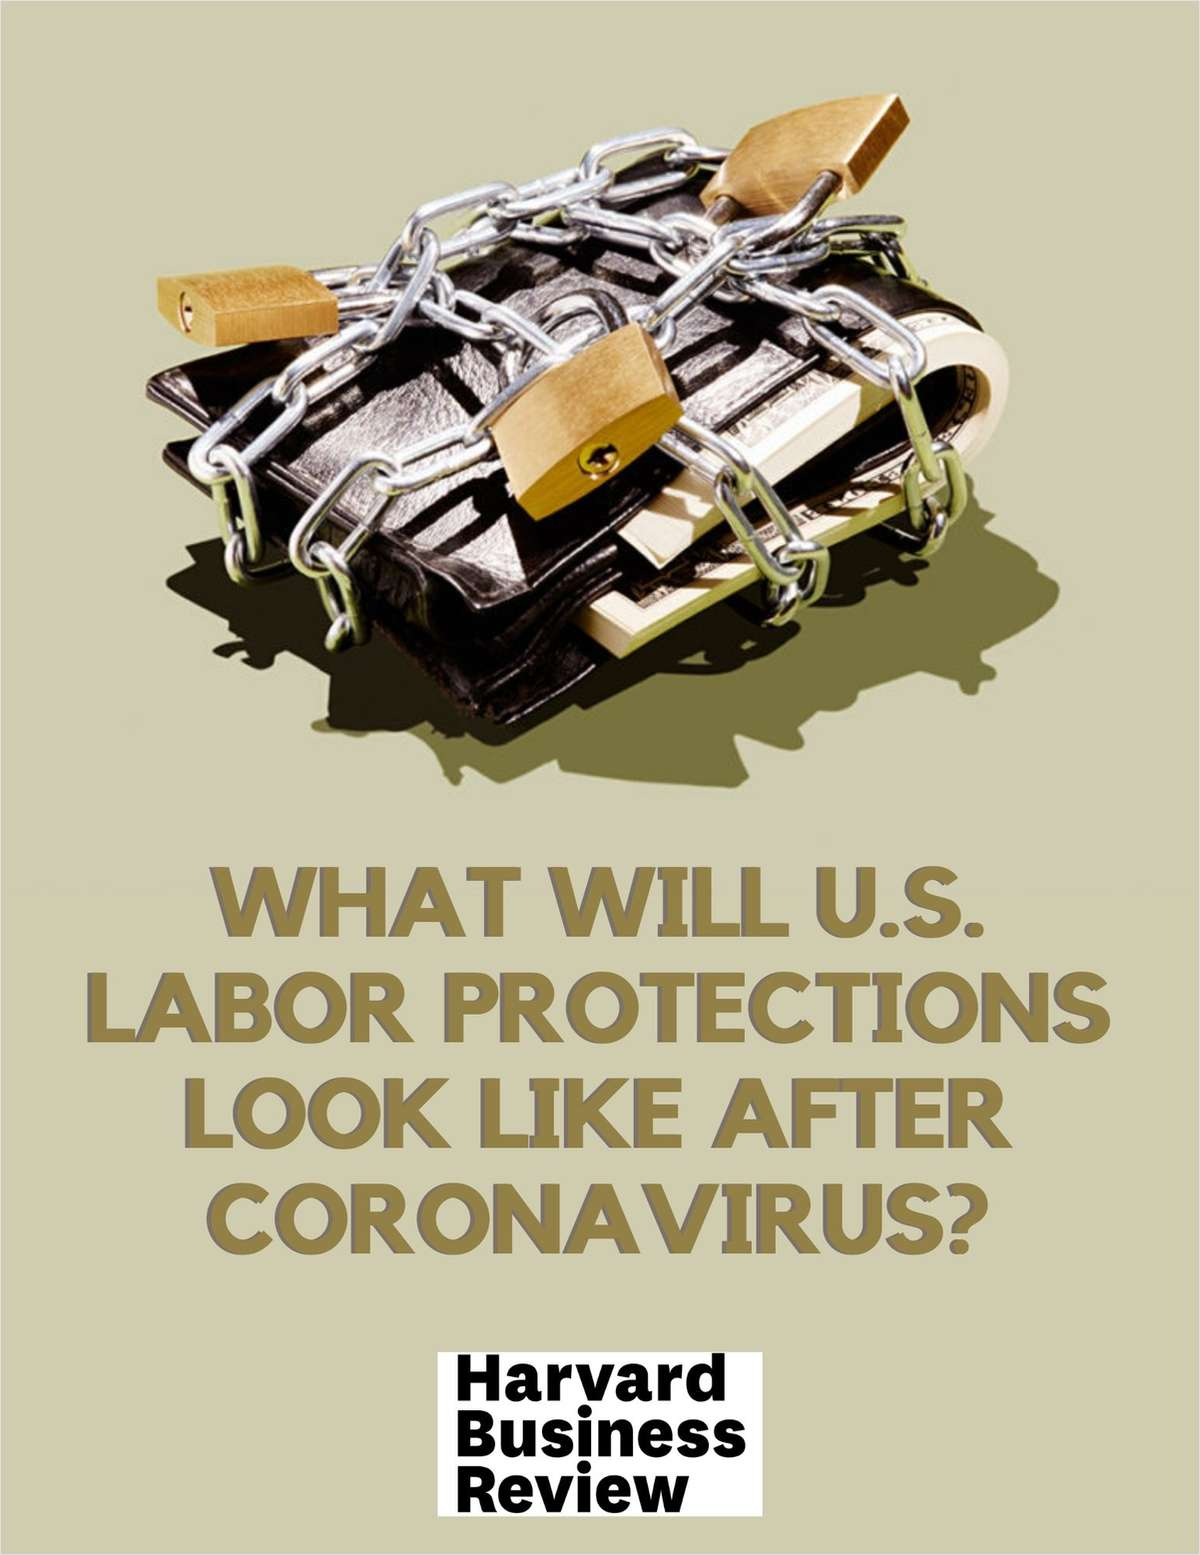 What Will U.S. Labor Protections Look Like After Coronavirus?